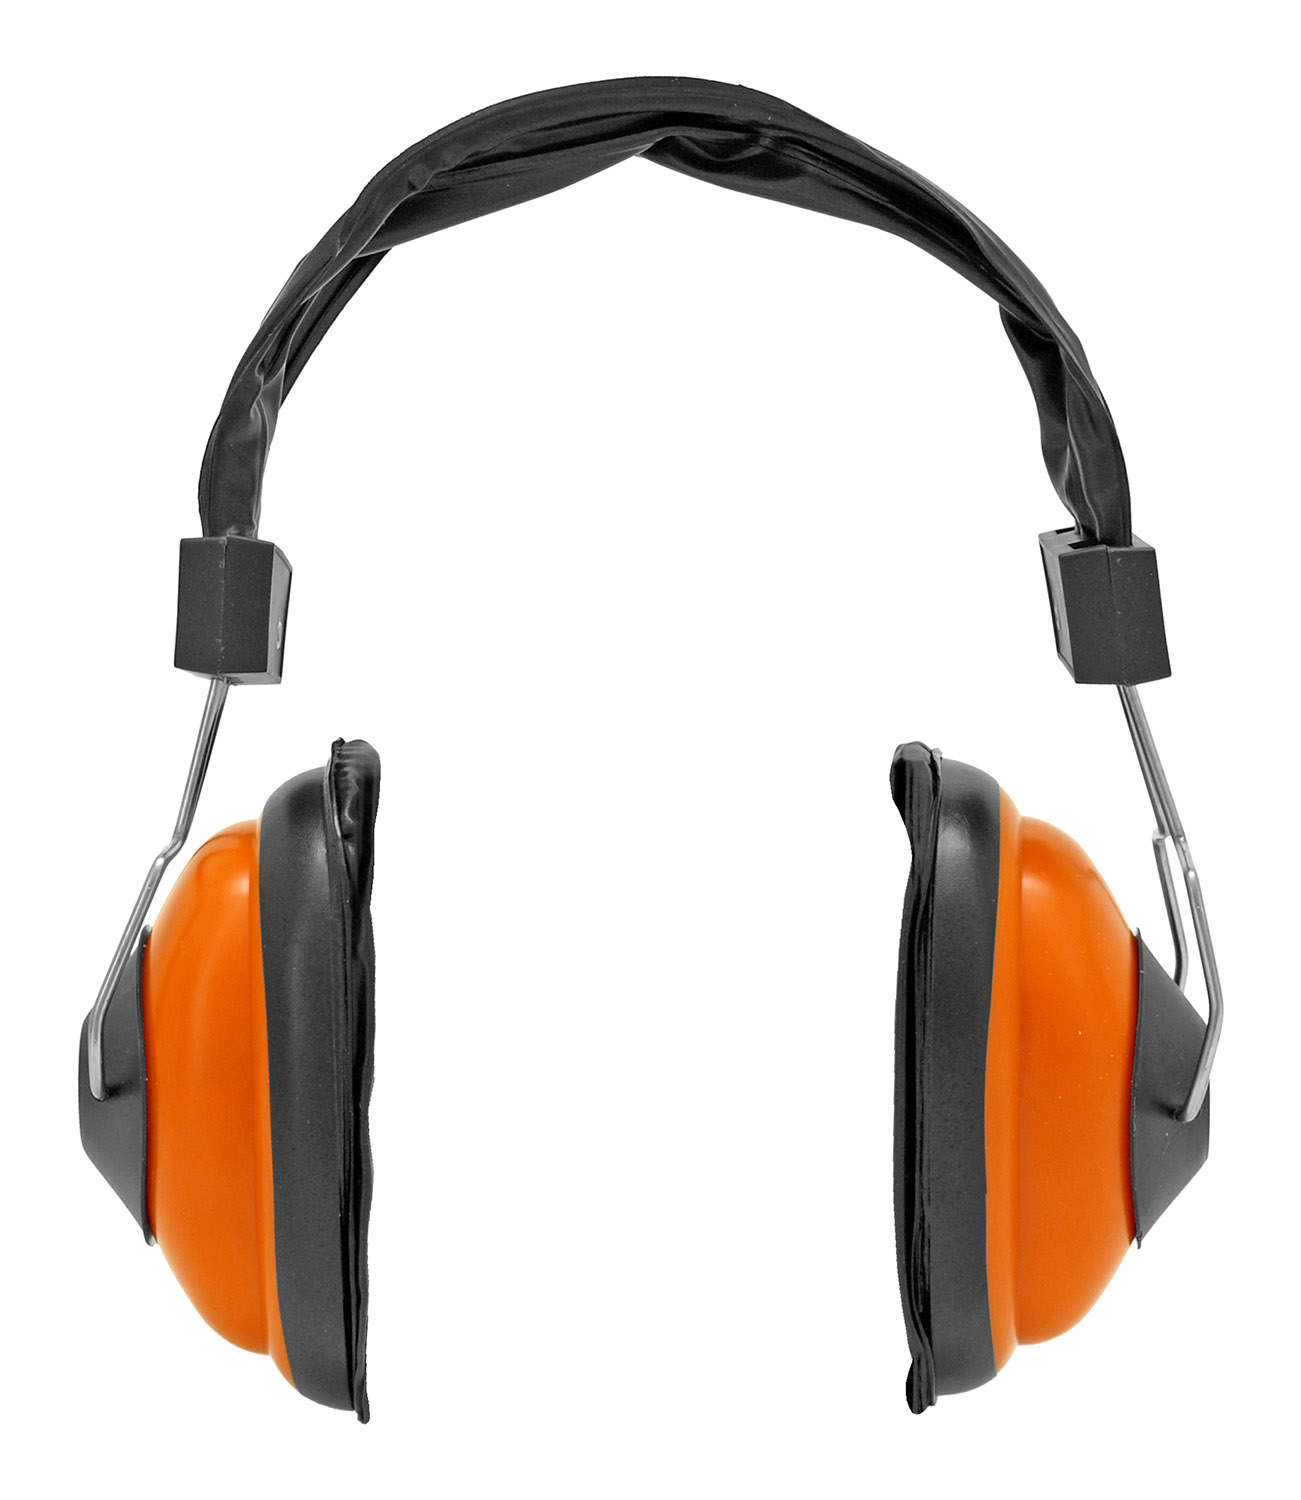 Professional Quality Ear Muffs - Orange